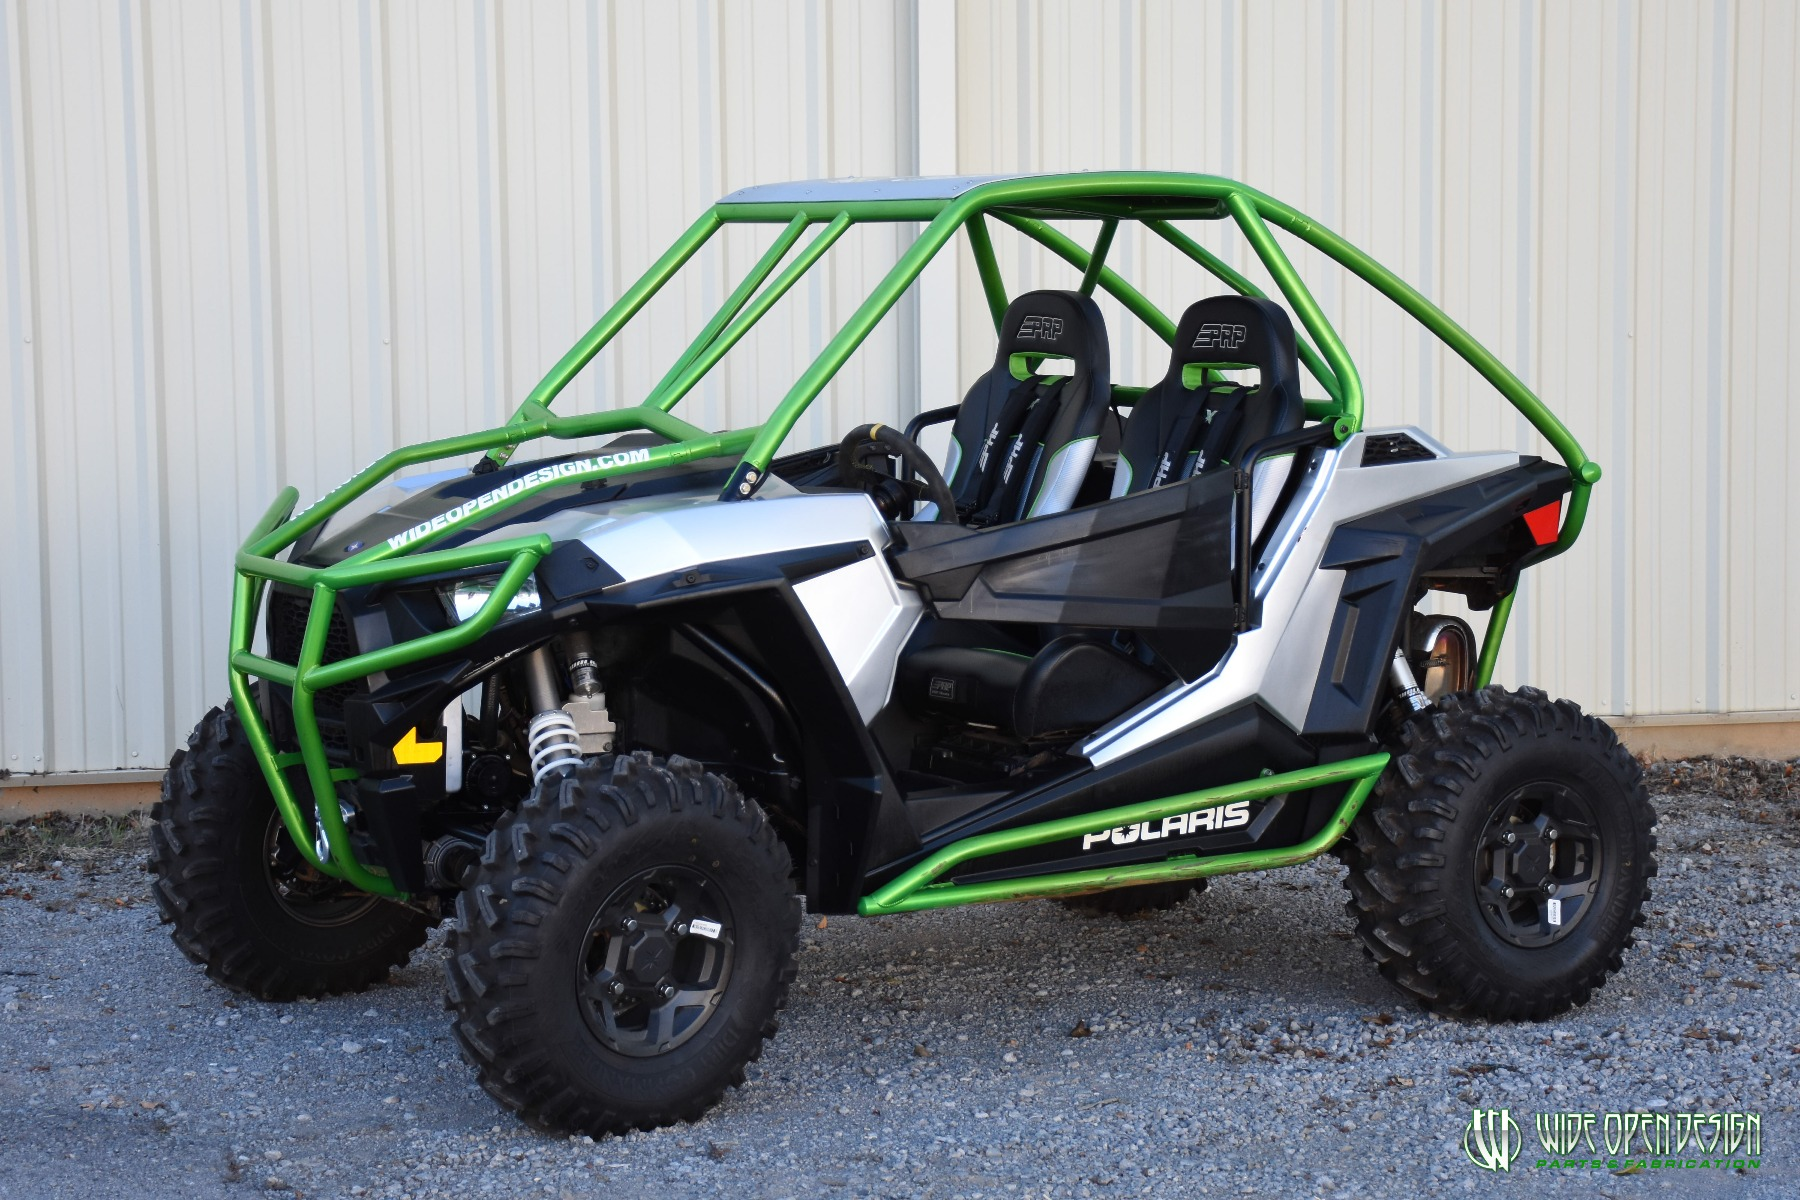 Jason's 1000s RZR with Wide Open Design Rolled Roof Cage, Front Bumper with Tie In, and Rocker Guards 23